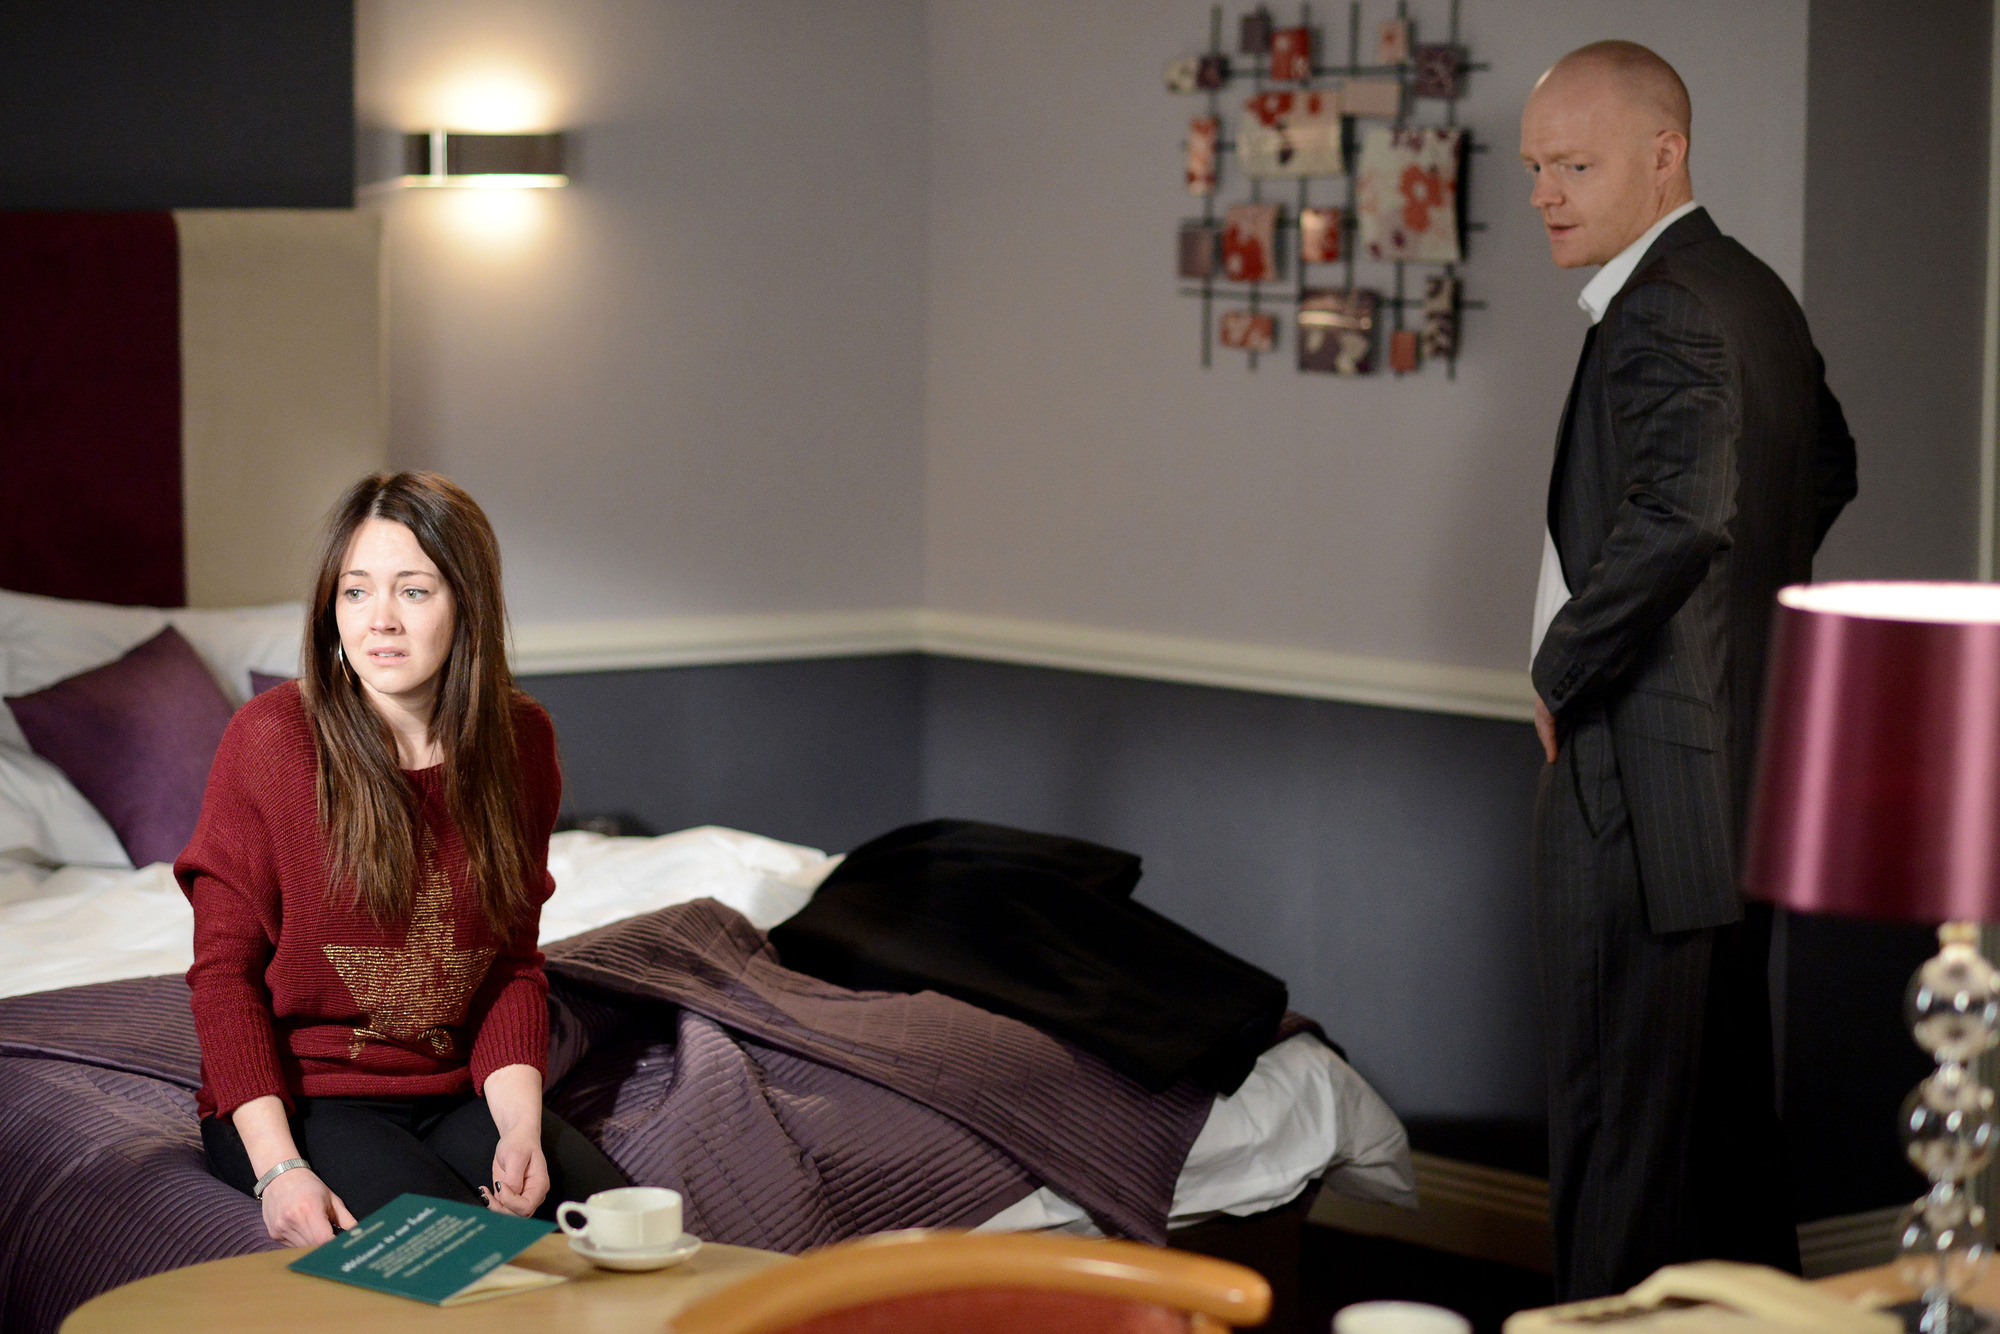 Max and Stacey kiss: A history of EastEnders' most dramatic (and longest) on/off relationship